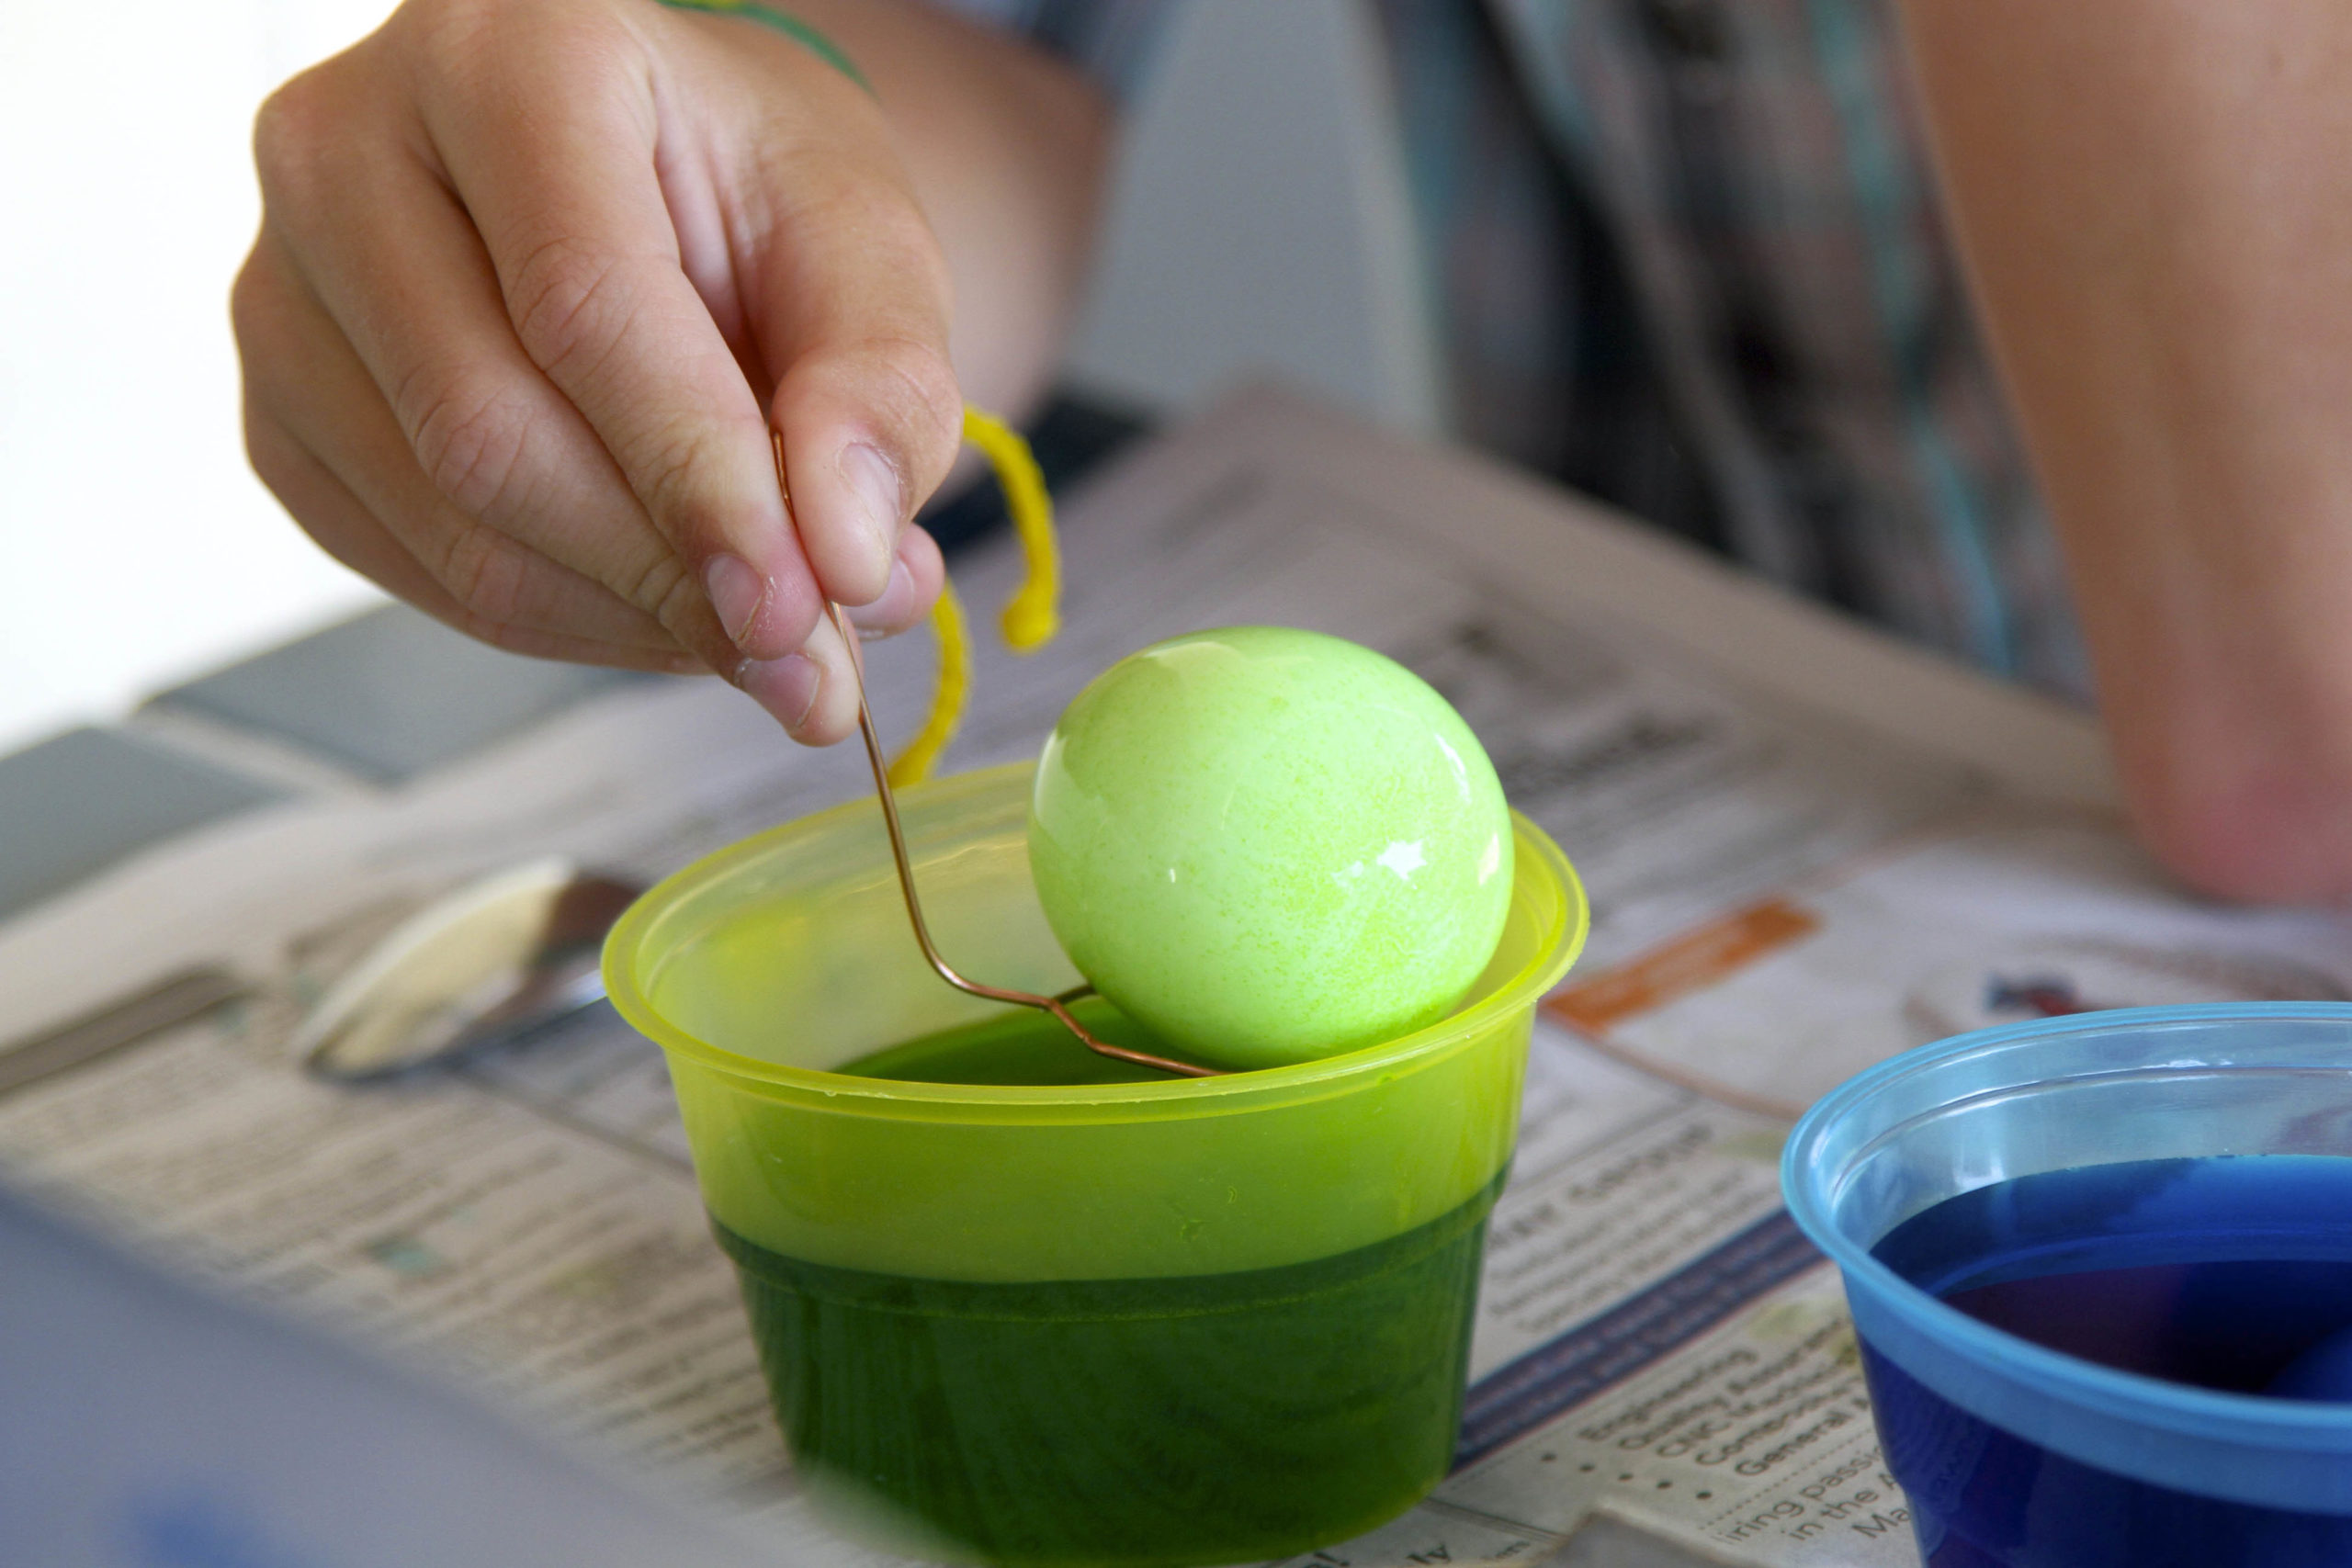 easter cleaning tips - egg dying - image 1